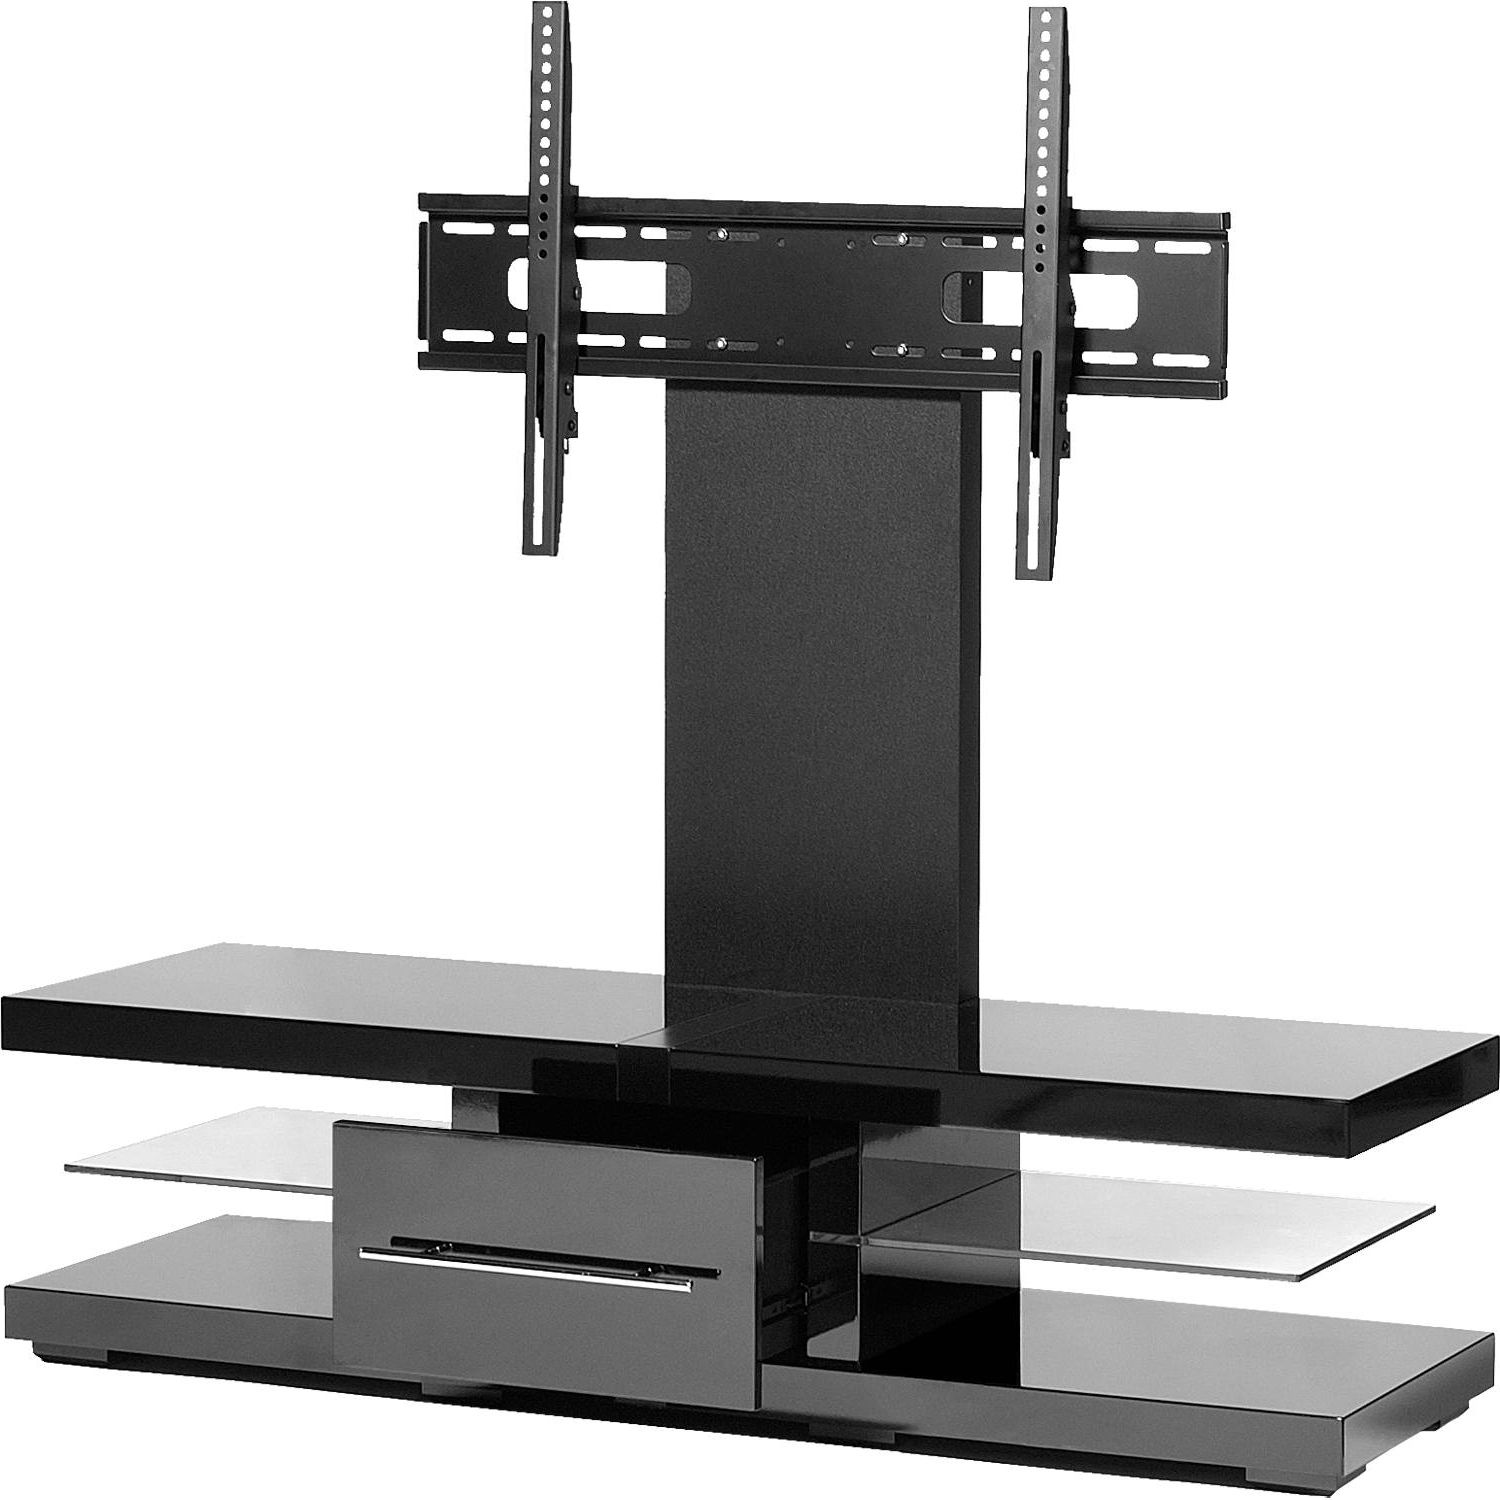 "Most Current Techlink Echo Ec130Tvb Tv Stands With Regard To Techlink Echo Ec130Tvb For Up To 60"" Tvs Cable Tv Stand With Bracket (Gallery 3 of 20)"